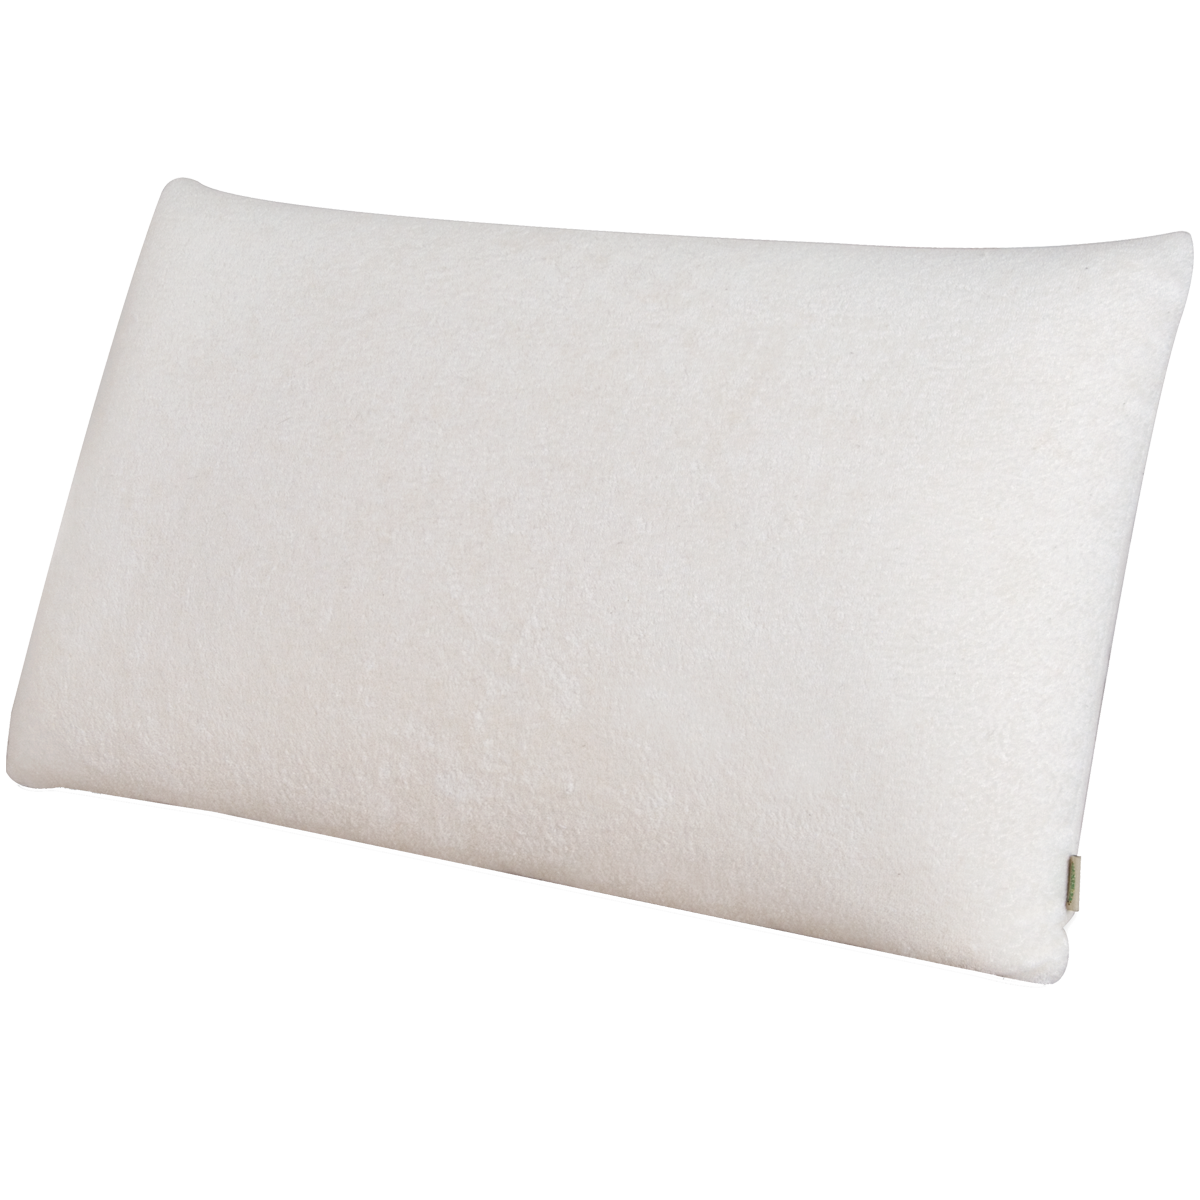 Clipart bed blanket pillow. Pillows png free icons